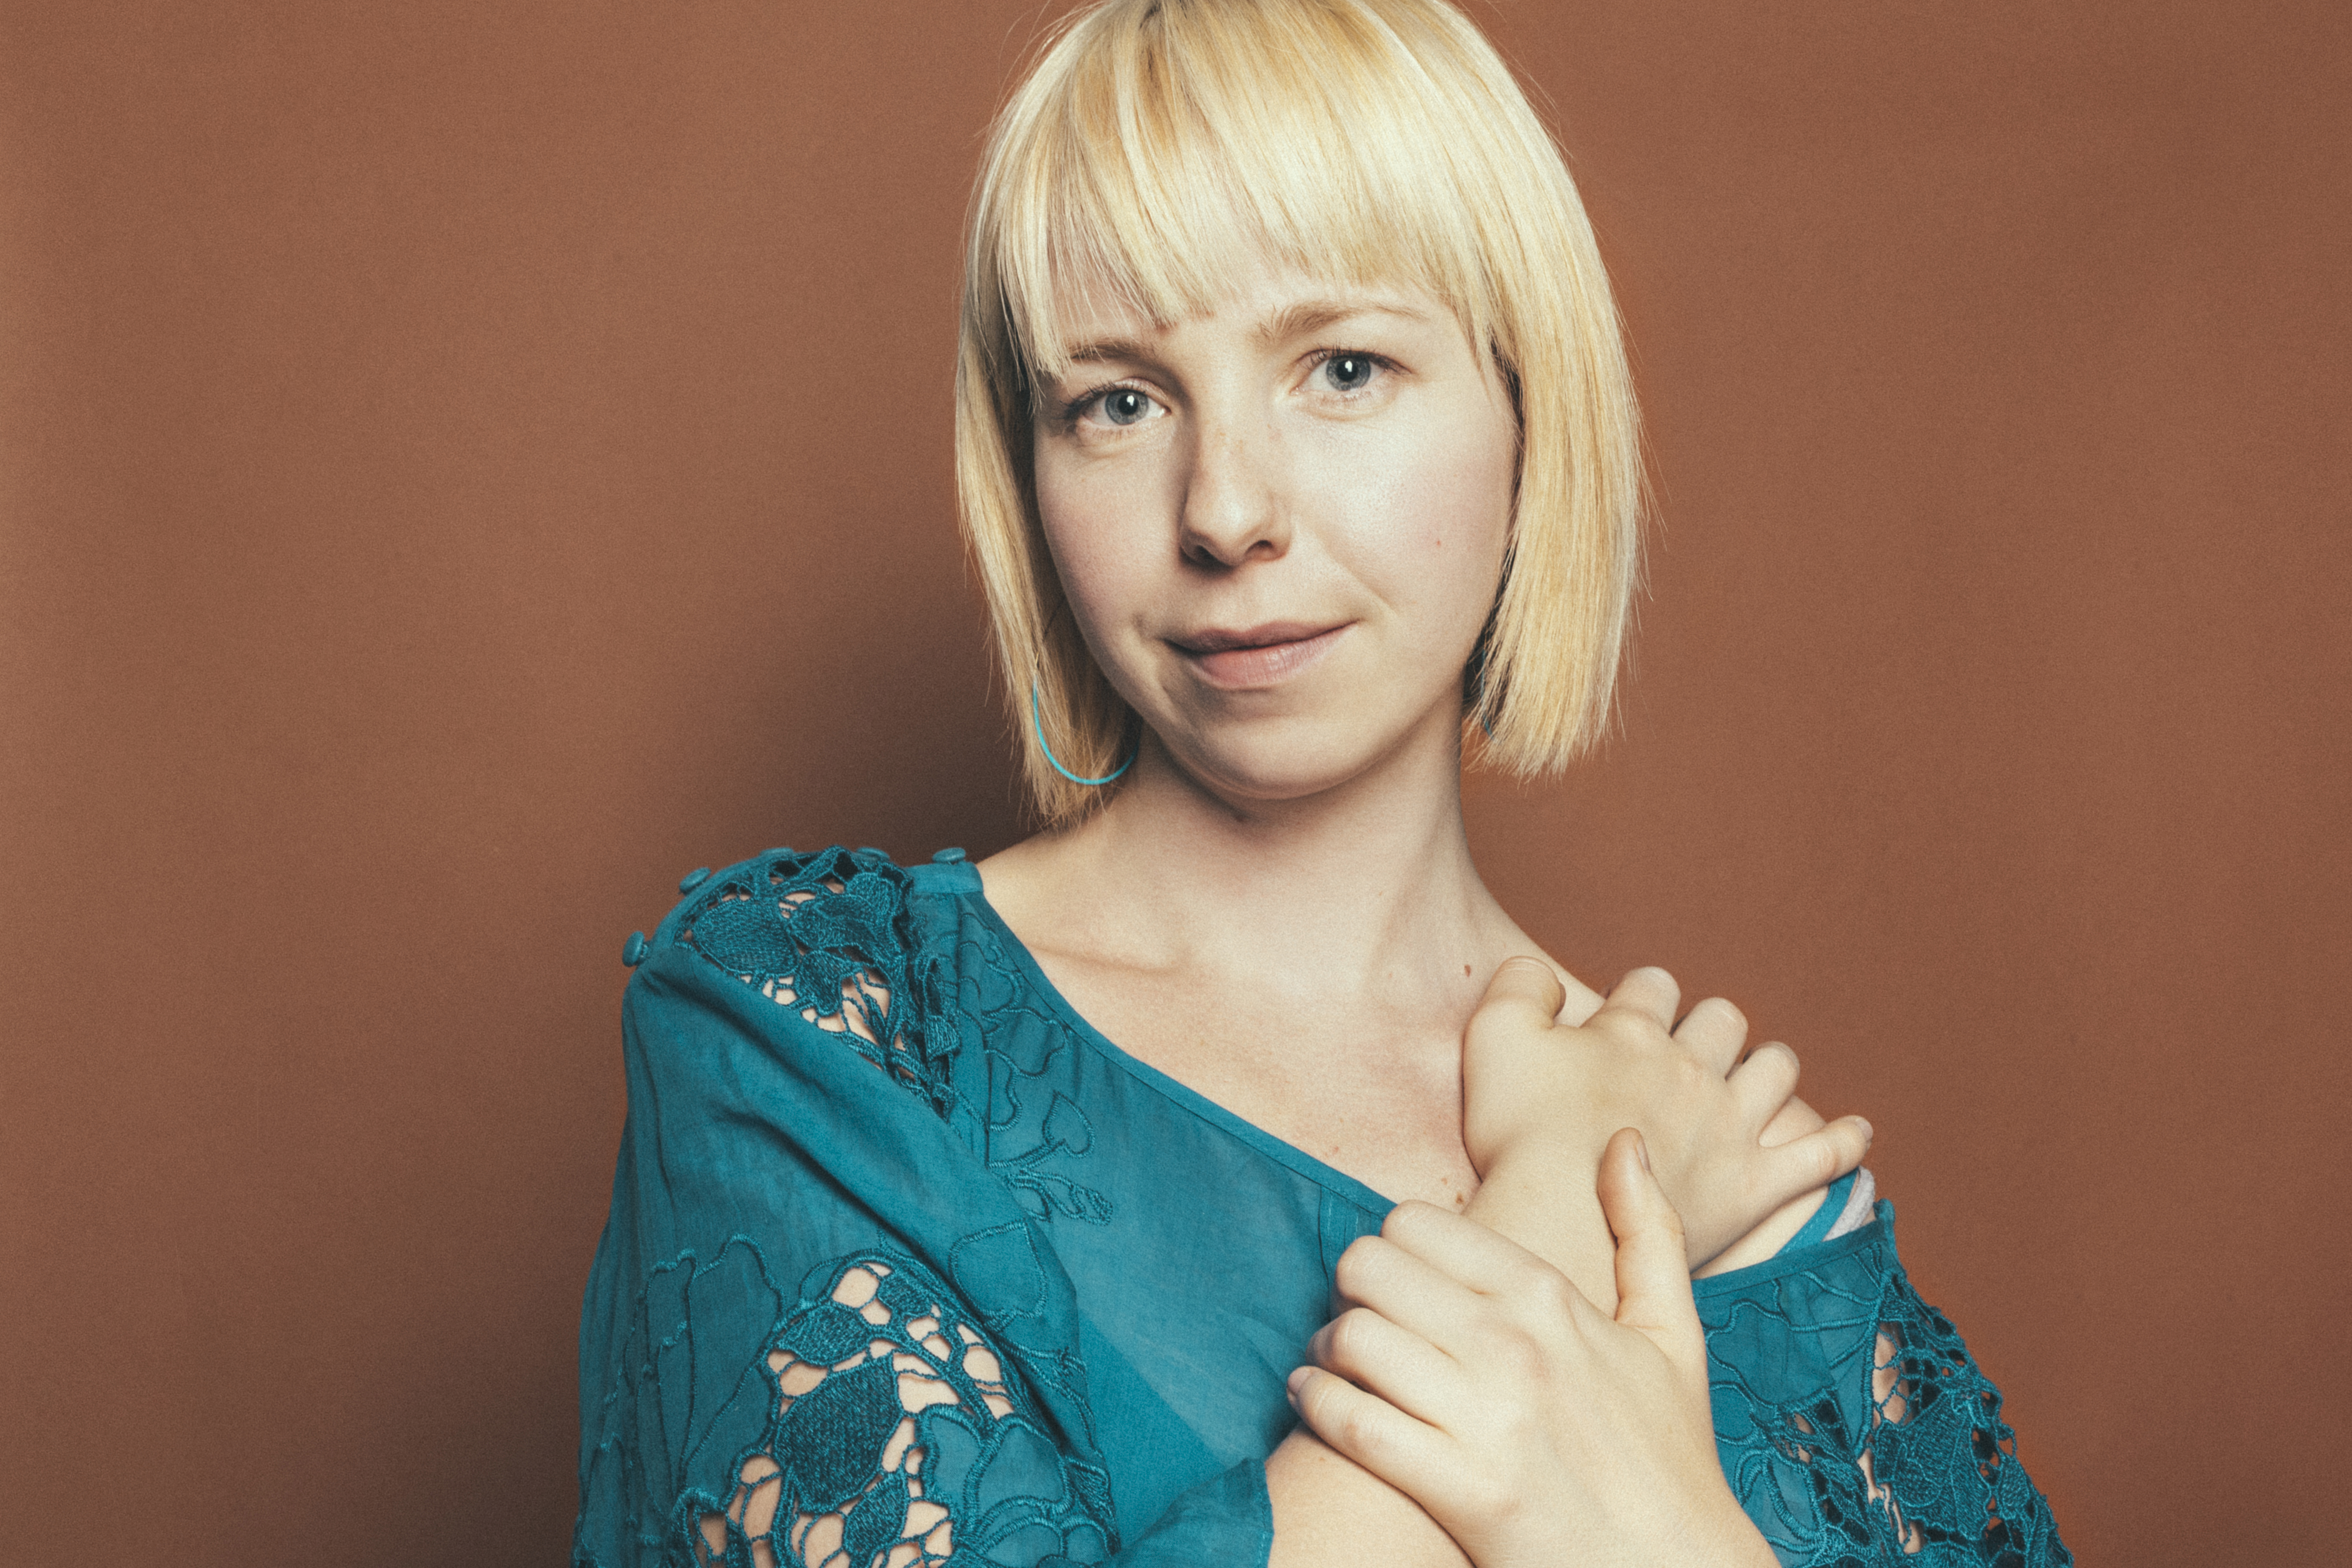 CONCERT REVIEW: The Prickle Reviews Emma Frank's Show at Zig Zag Jazz Club, Berlin